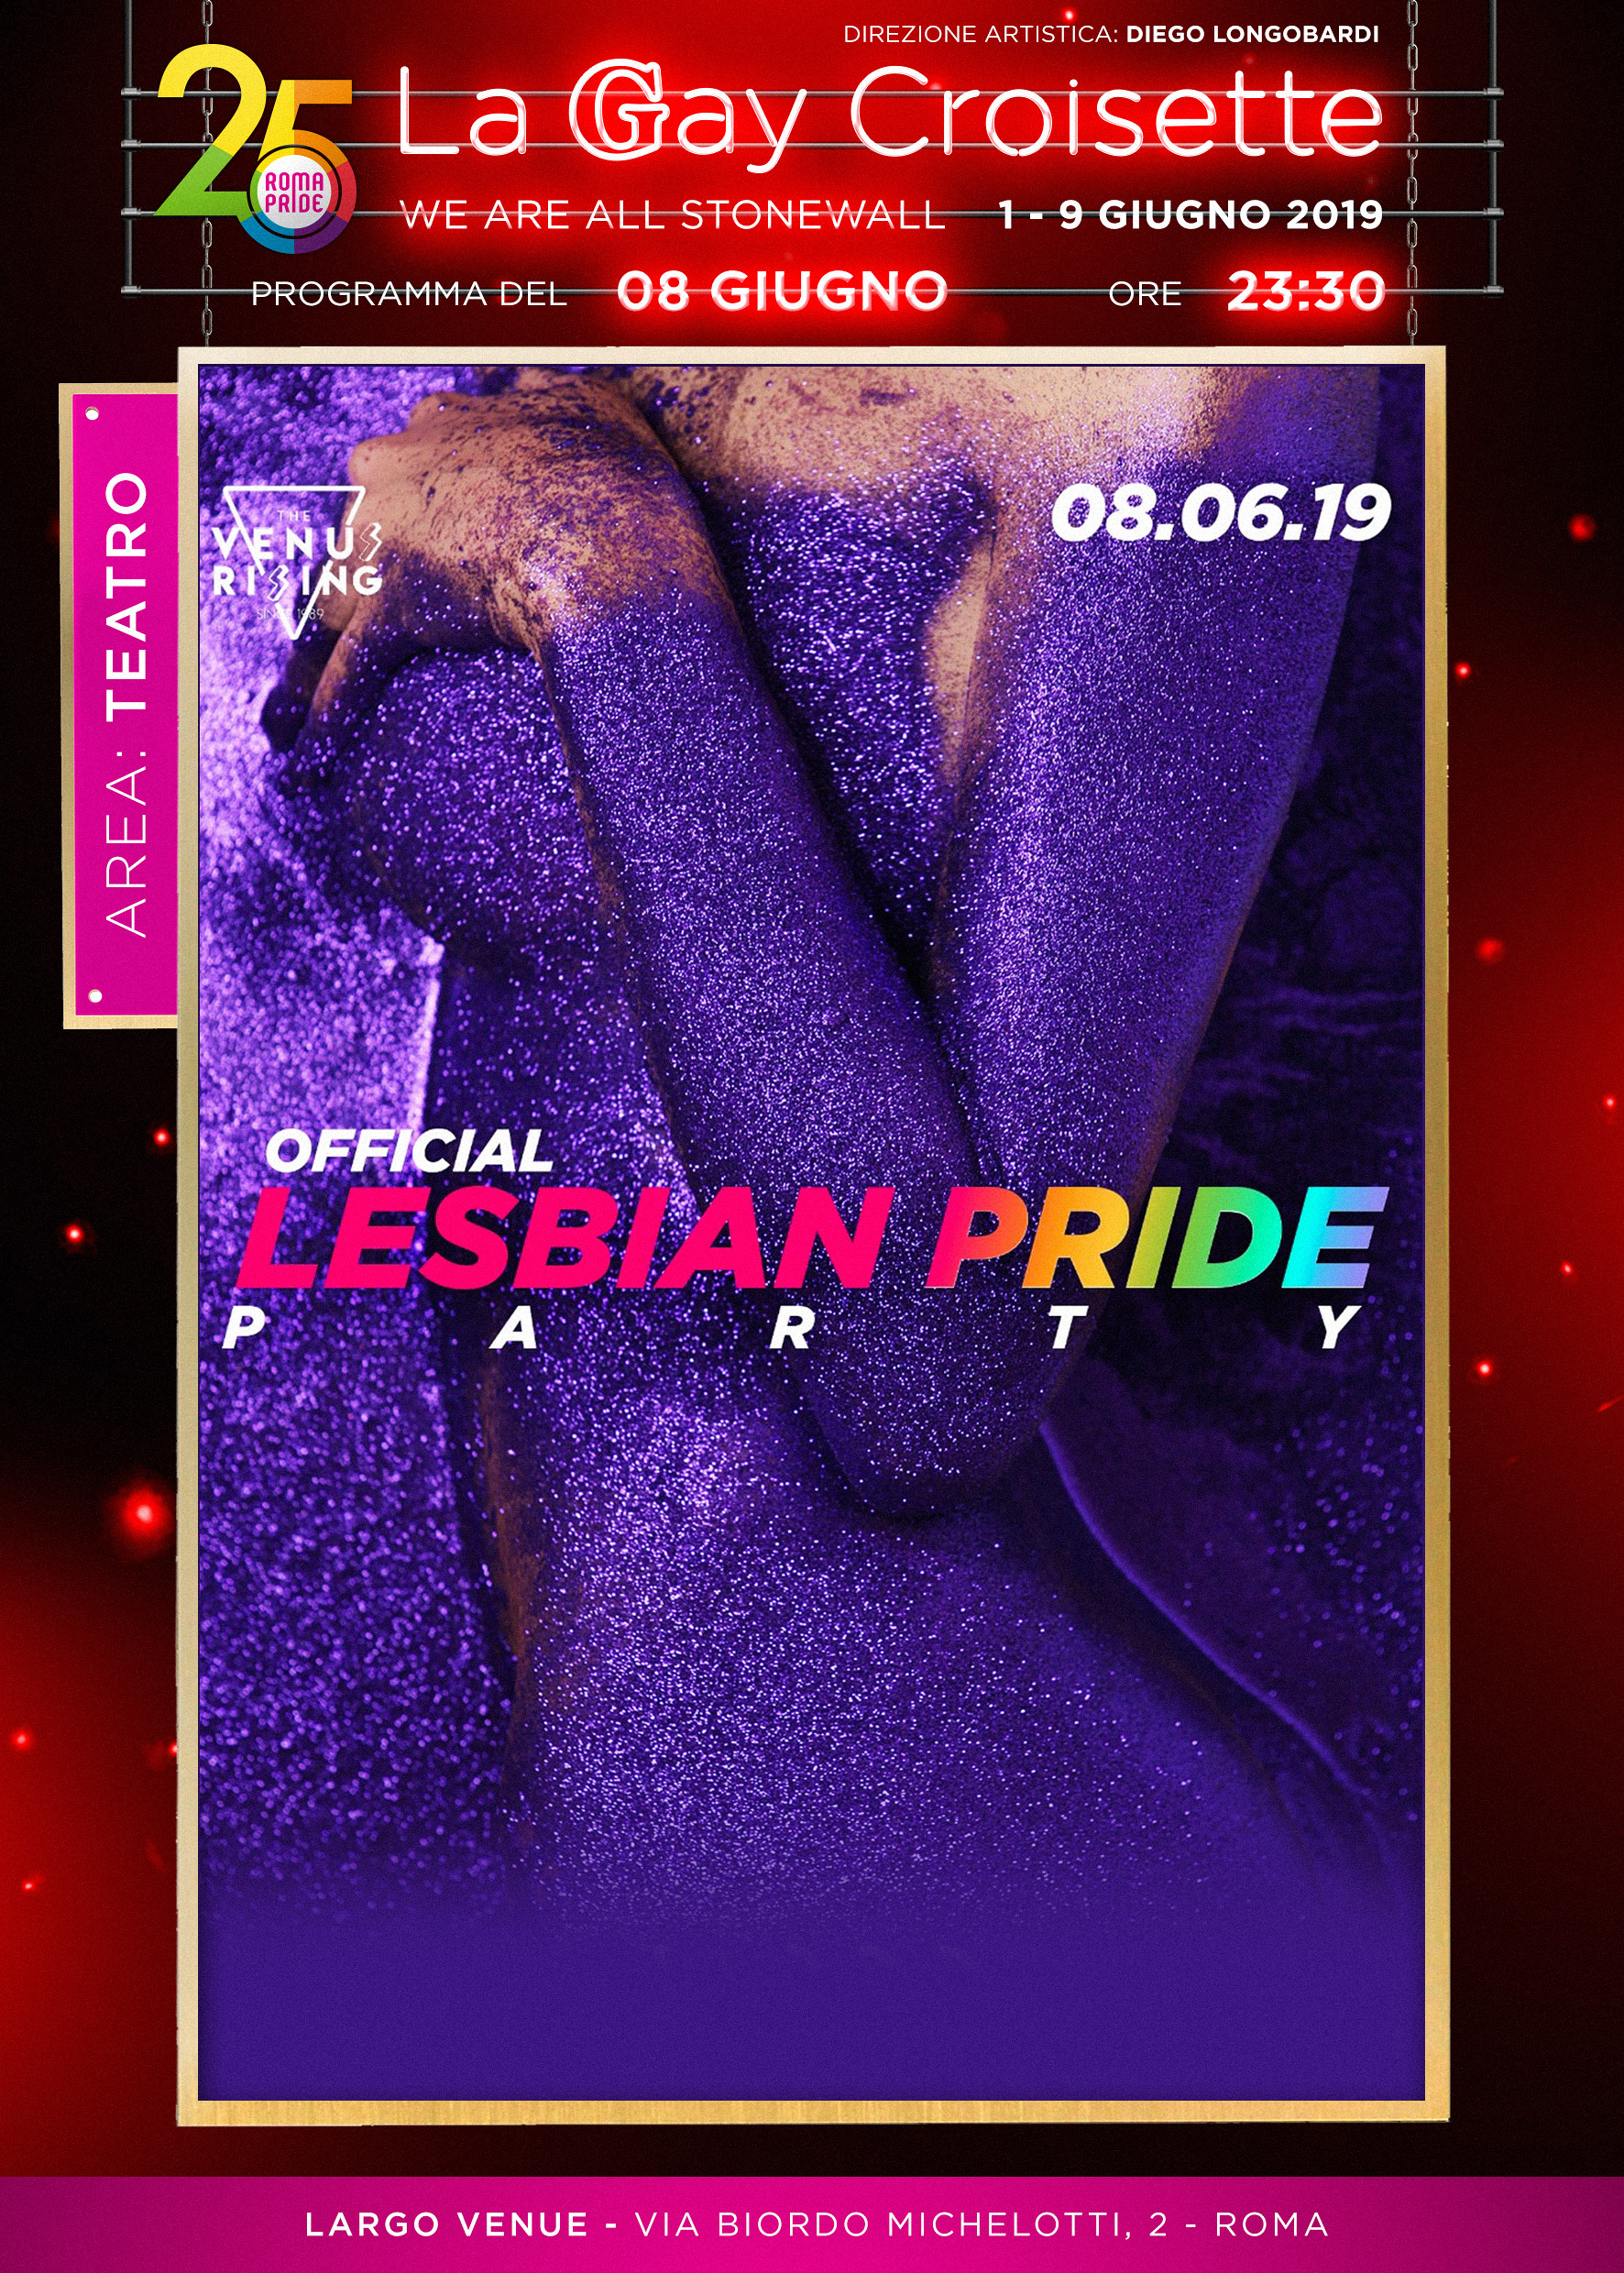 Gay Croisette - Official Lesbian Pride Party